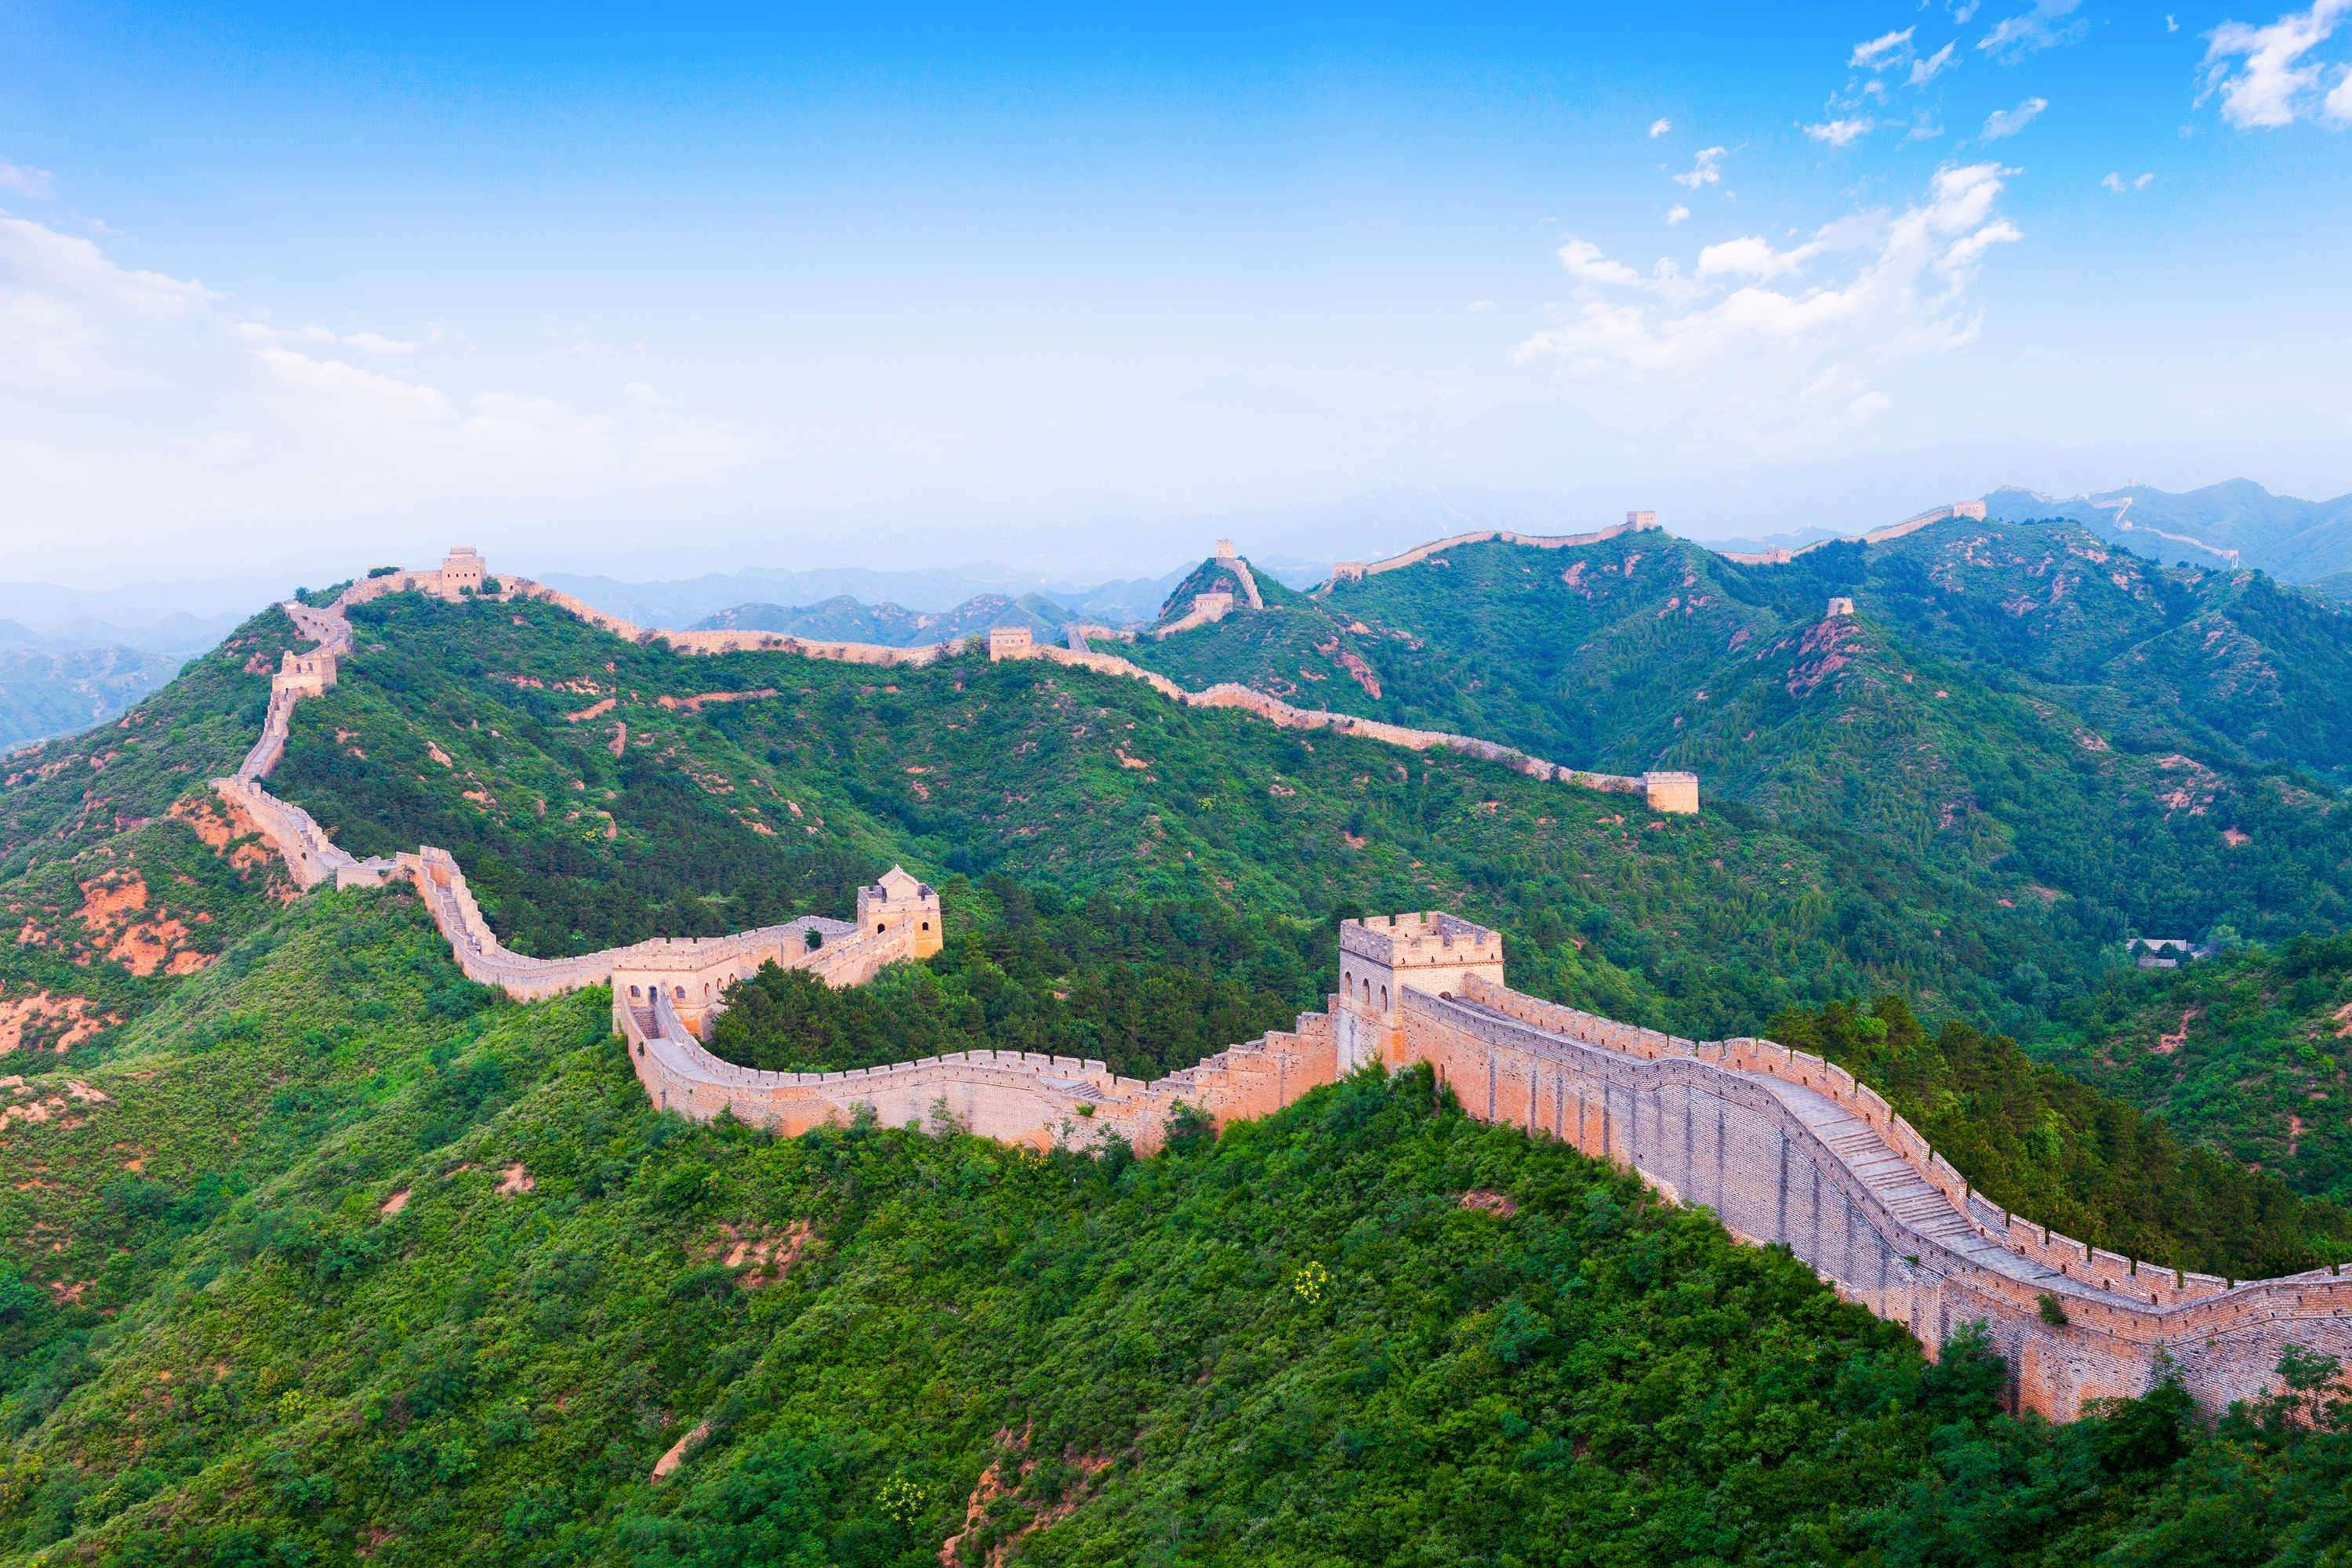 See the Great Wall of China